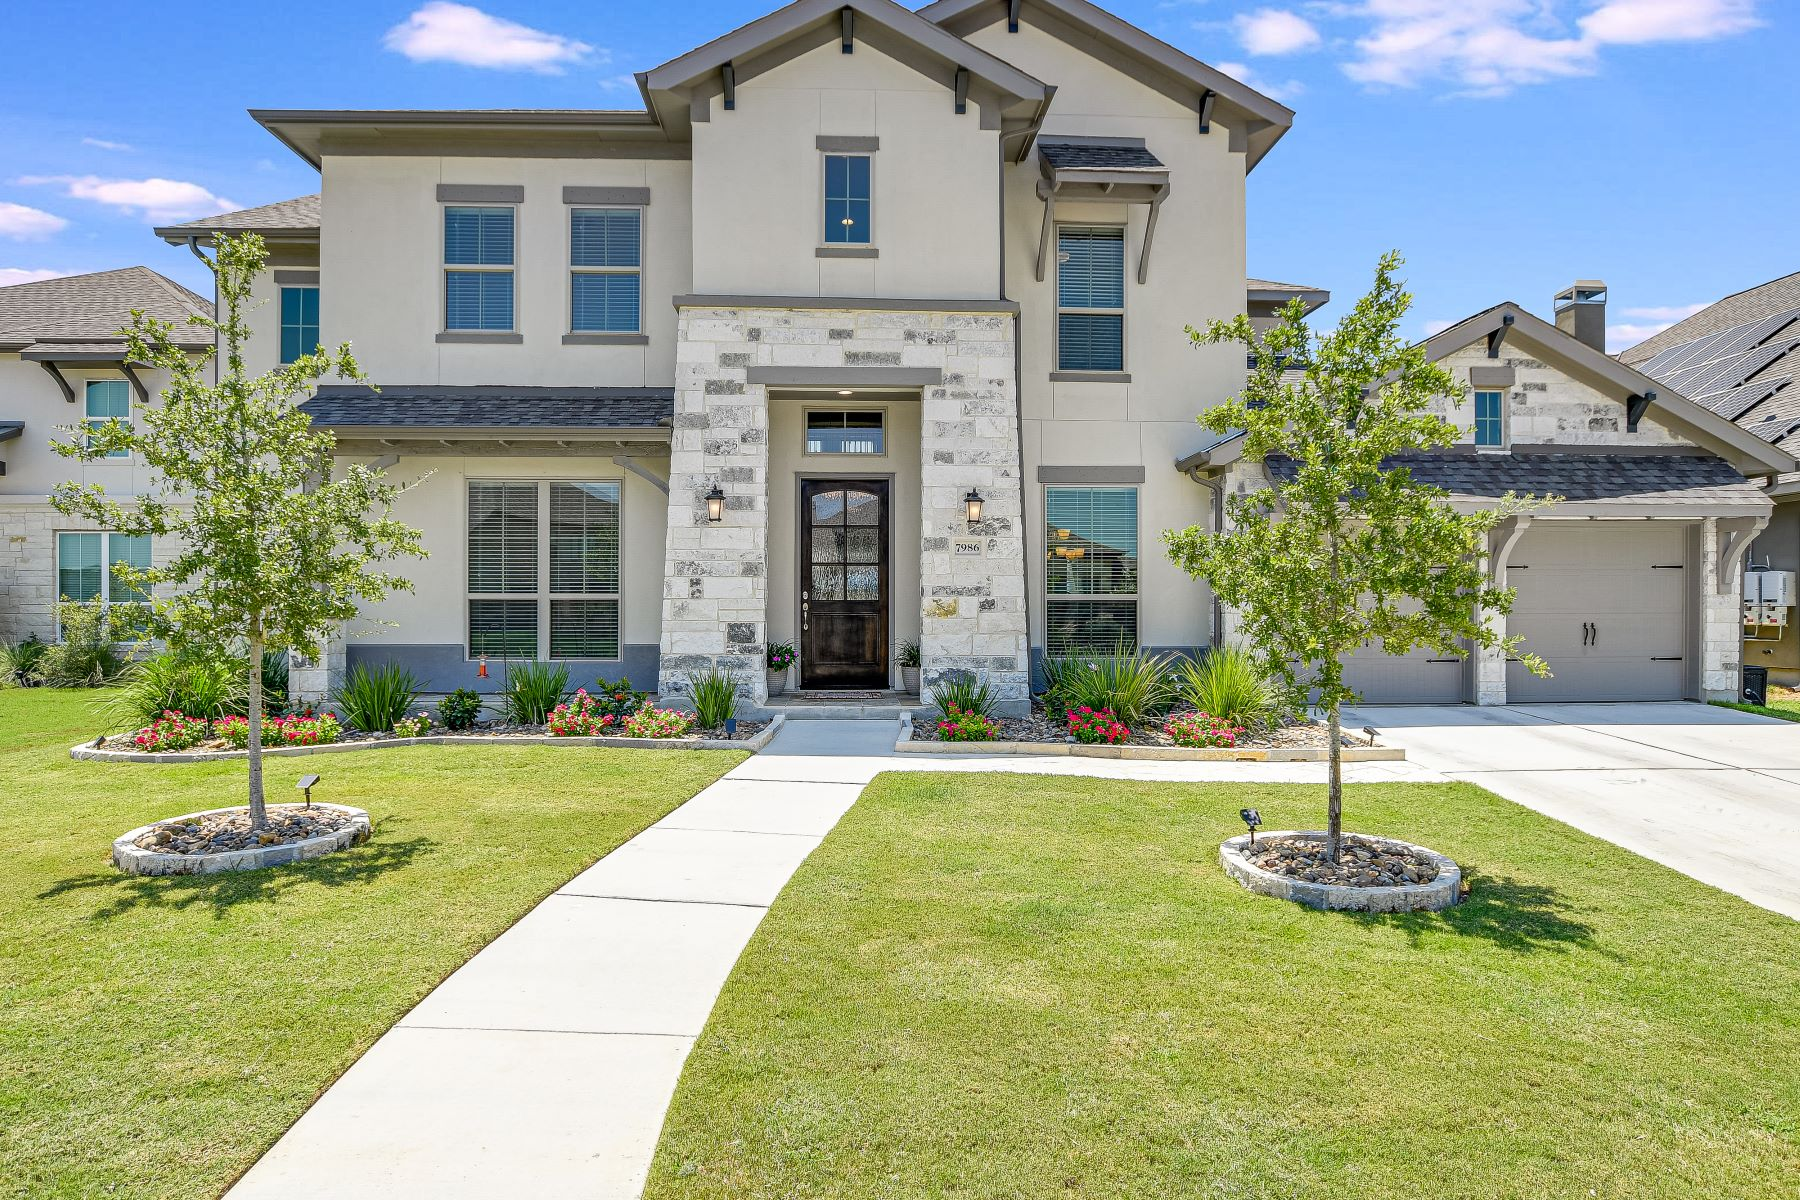 Single Family Homes for Sale at Prime Location and Unsurpassed Quality 7986 Valley Crest Fair Oaks Ranch, Texas 78015 United States